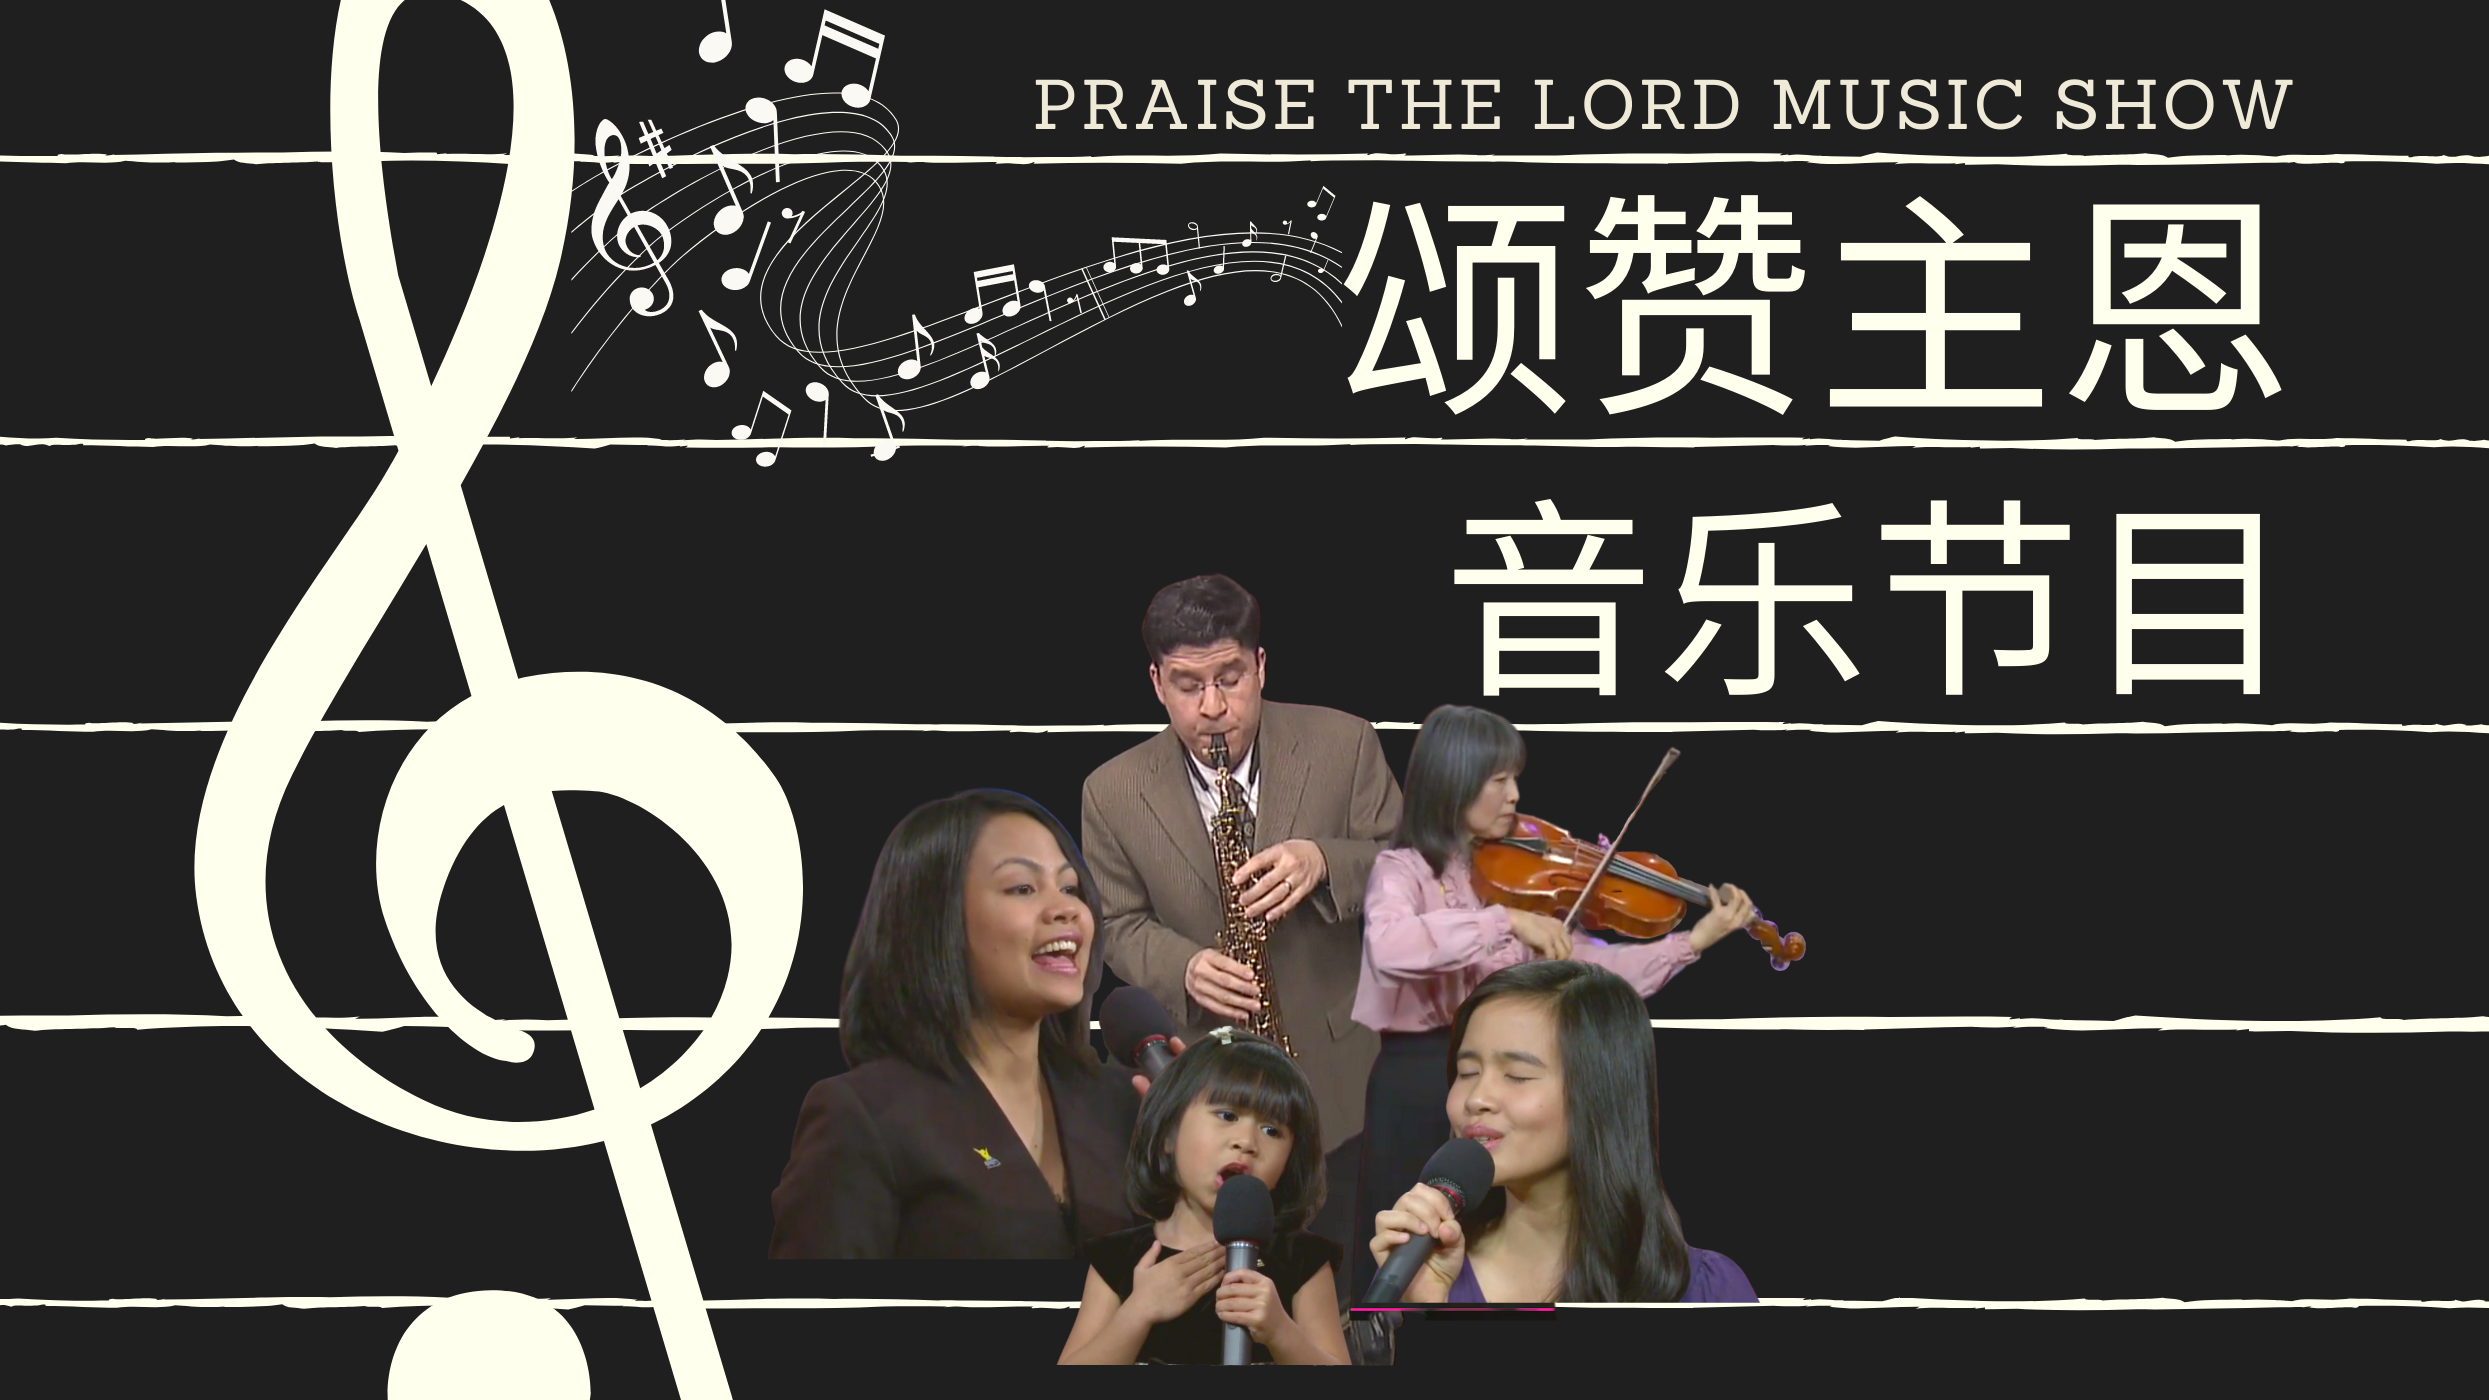 颂赞主恩音乐节目 Praise The Lord Music Show